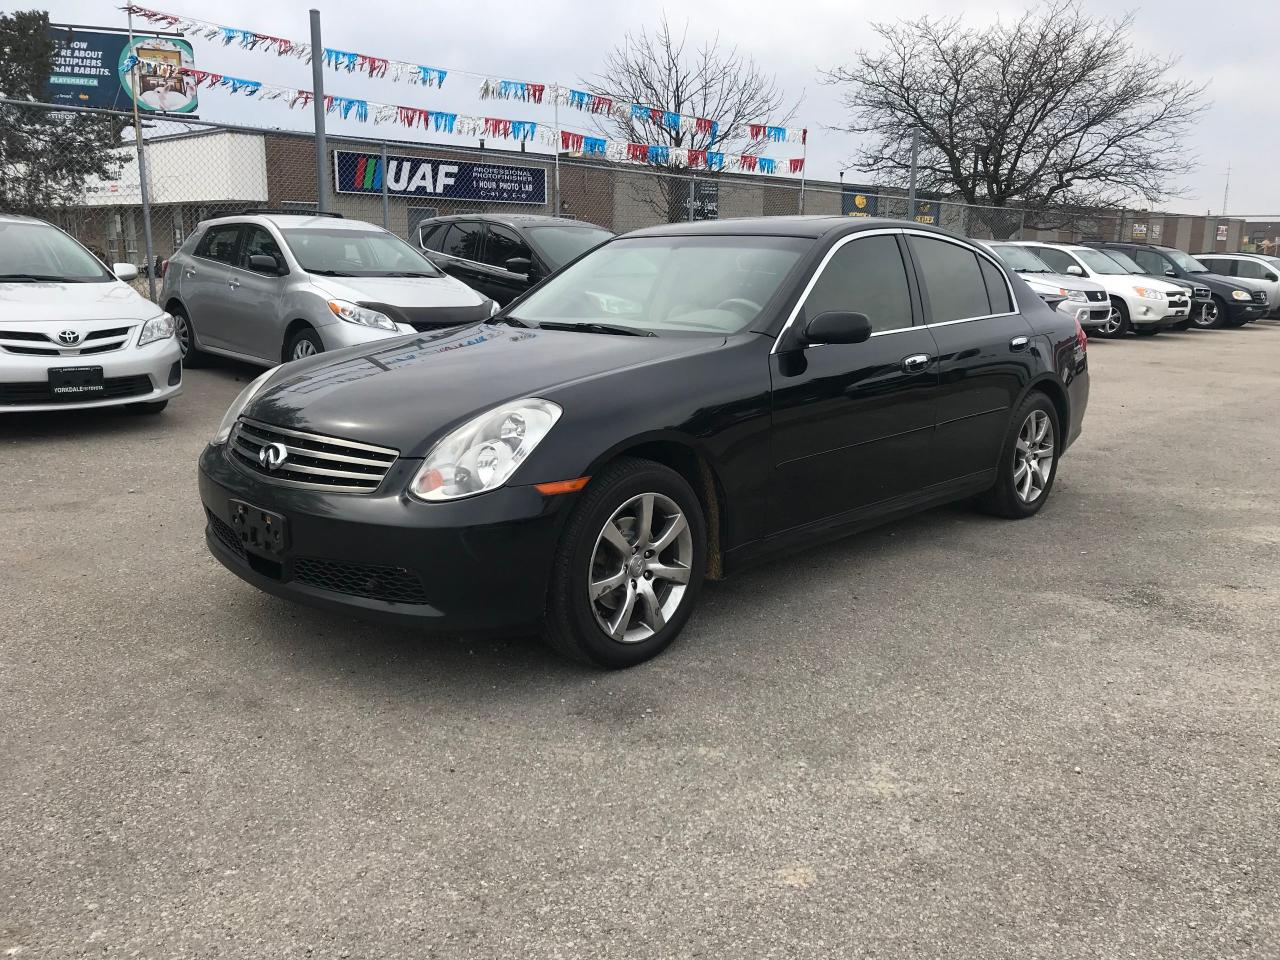 medium resolution of used 2005 infiniti g35x auto awd 4doors 139k safety 3years warranty includ for sale in toronto ontario carpages ca